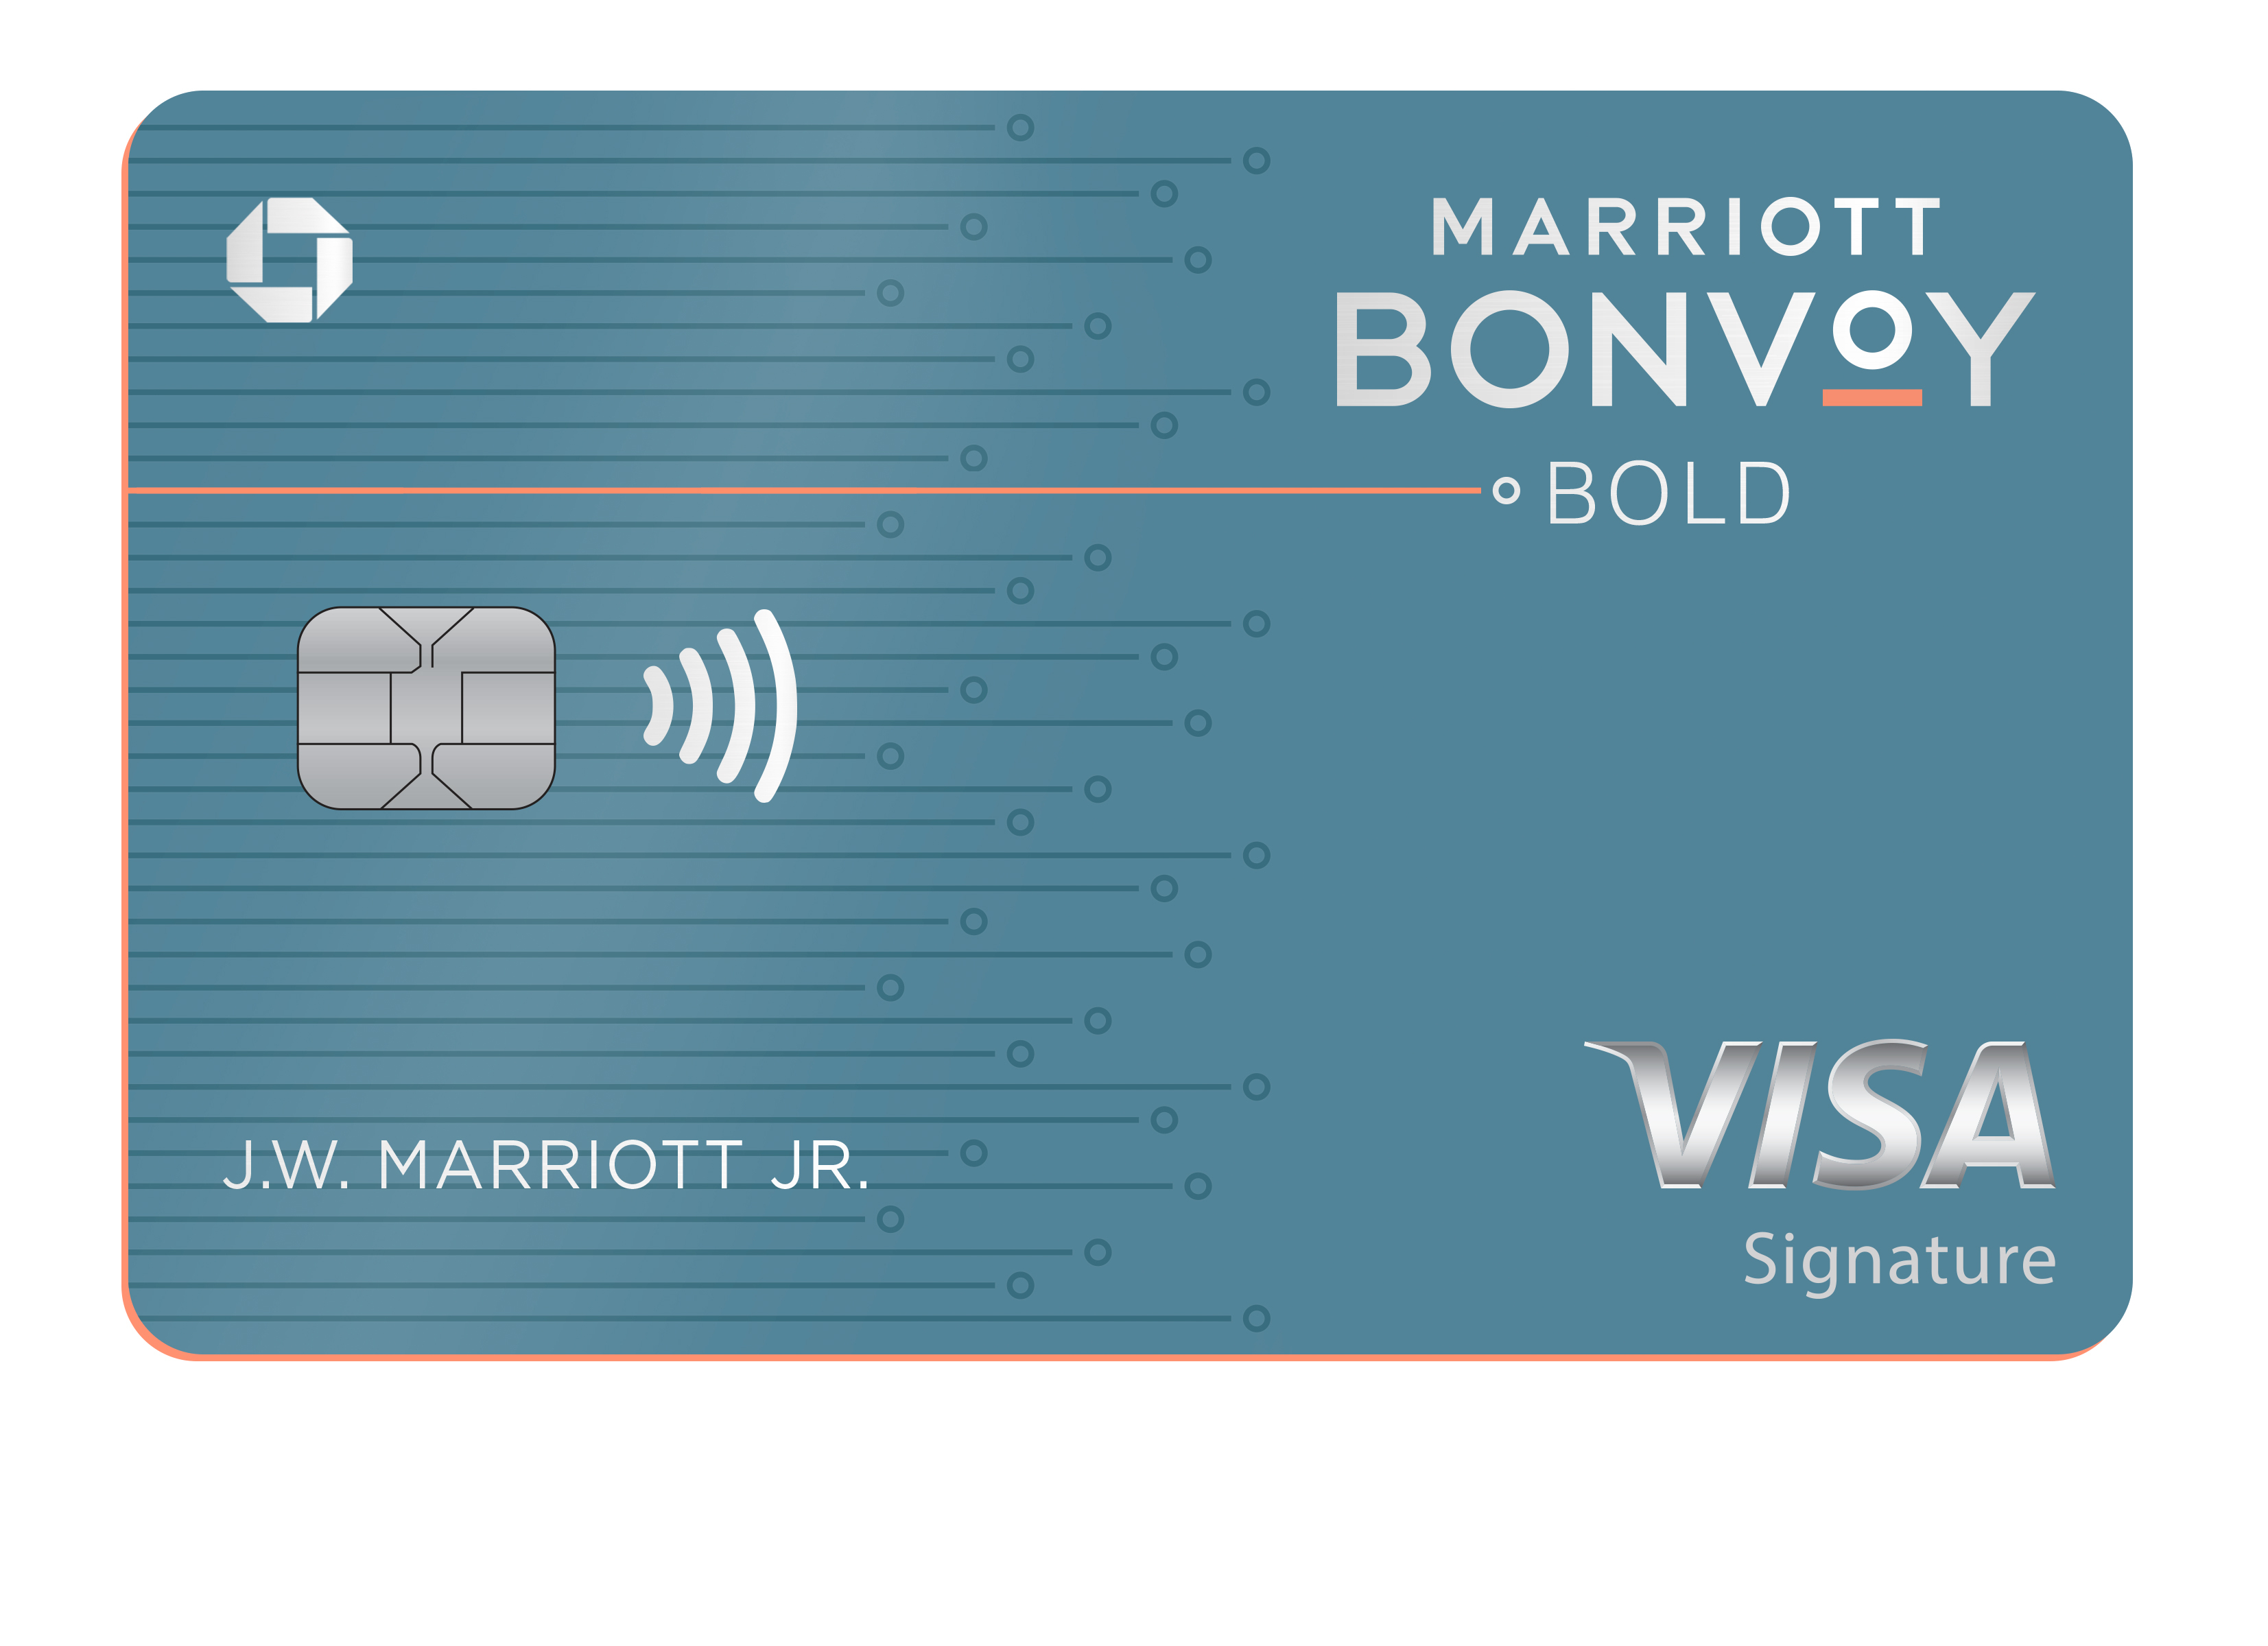 Erp Libra Chase Launches Co Branded Marriott Bonvoy Rewards Card With Tap